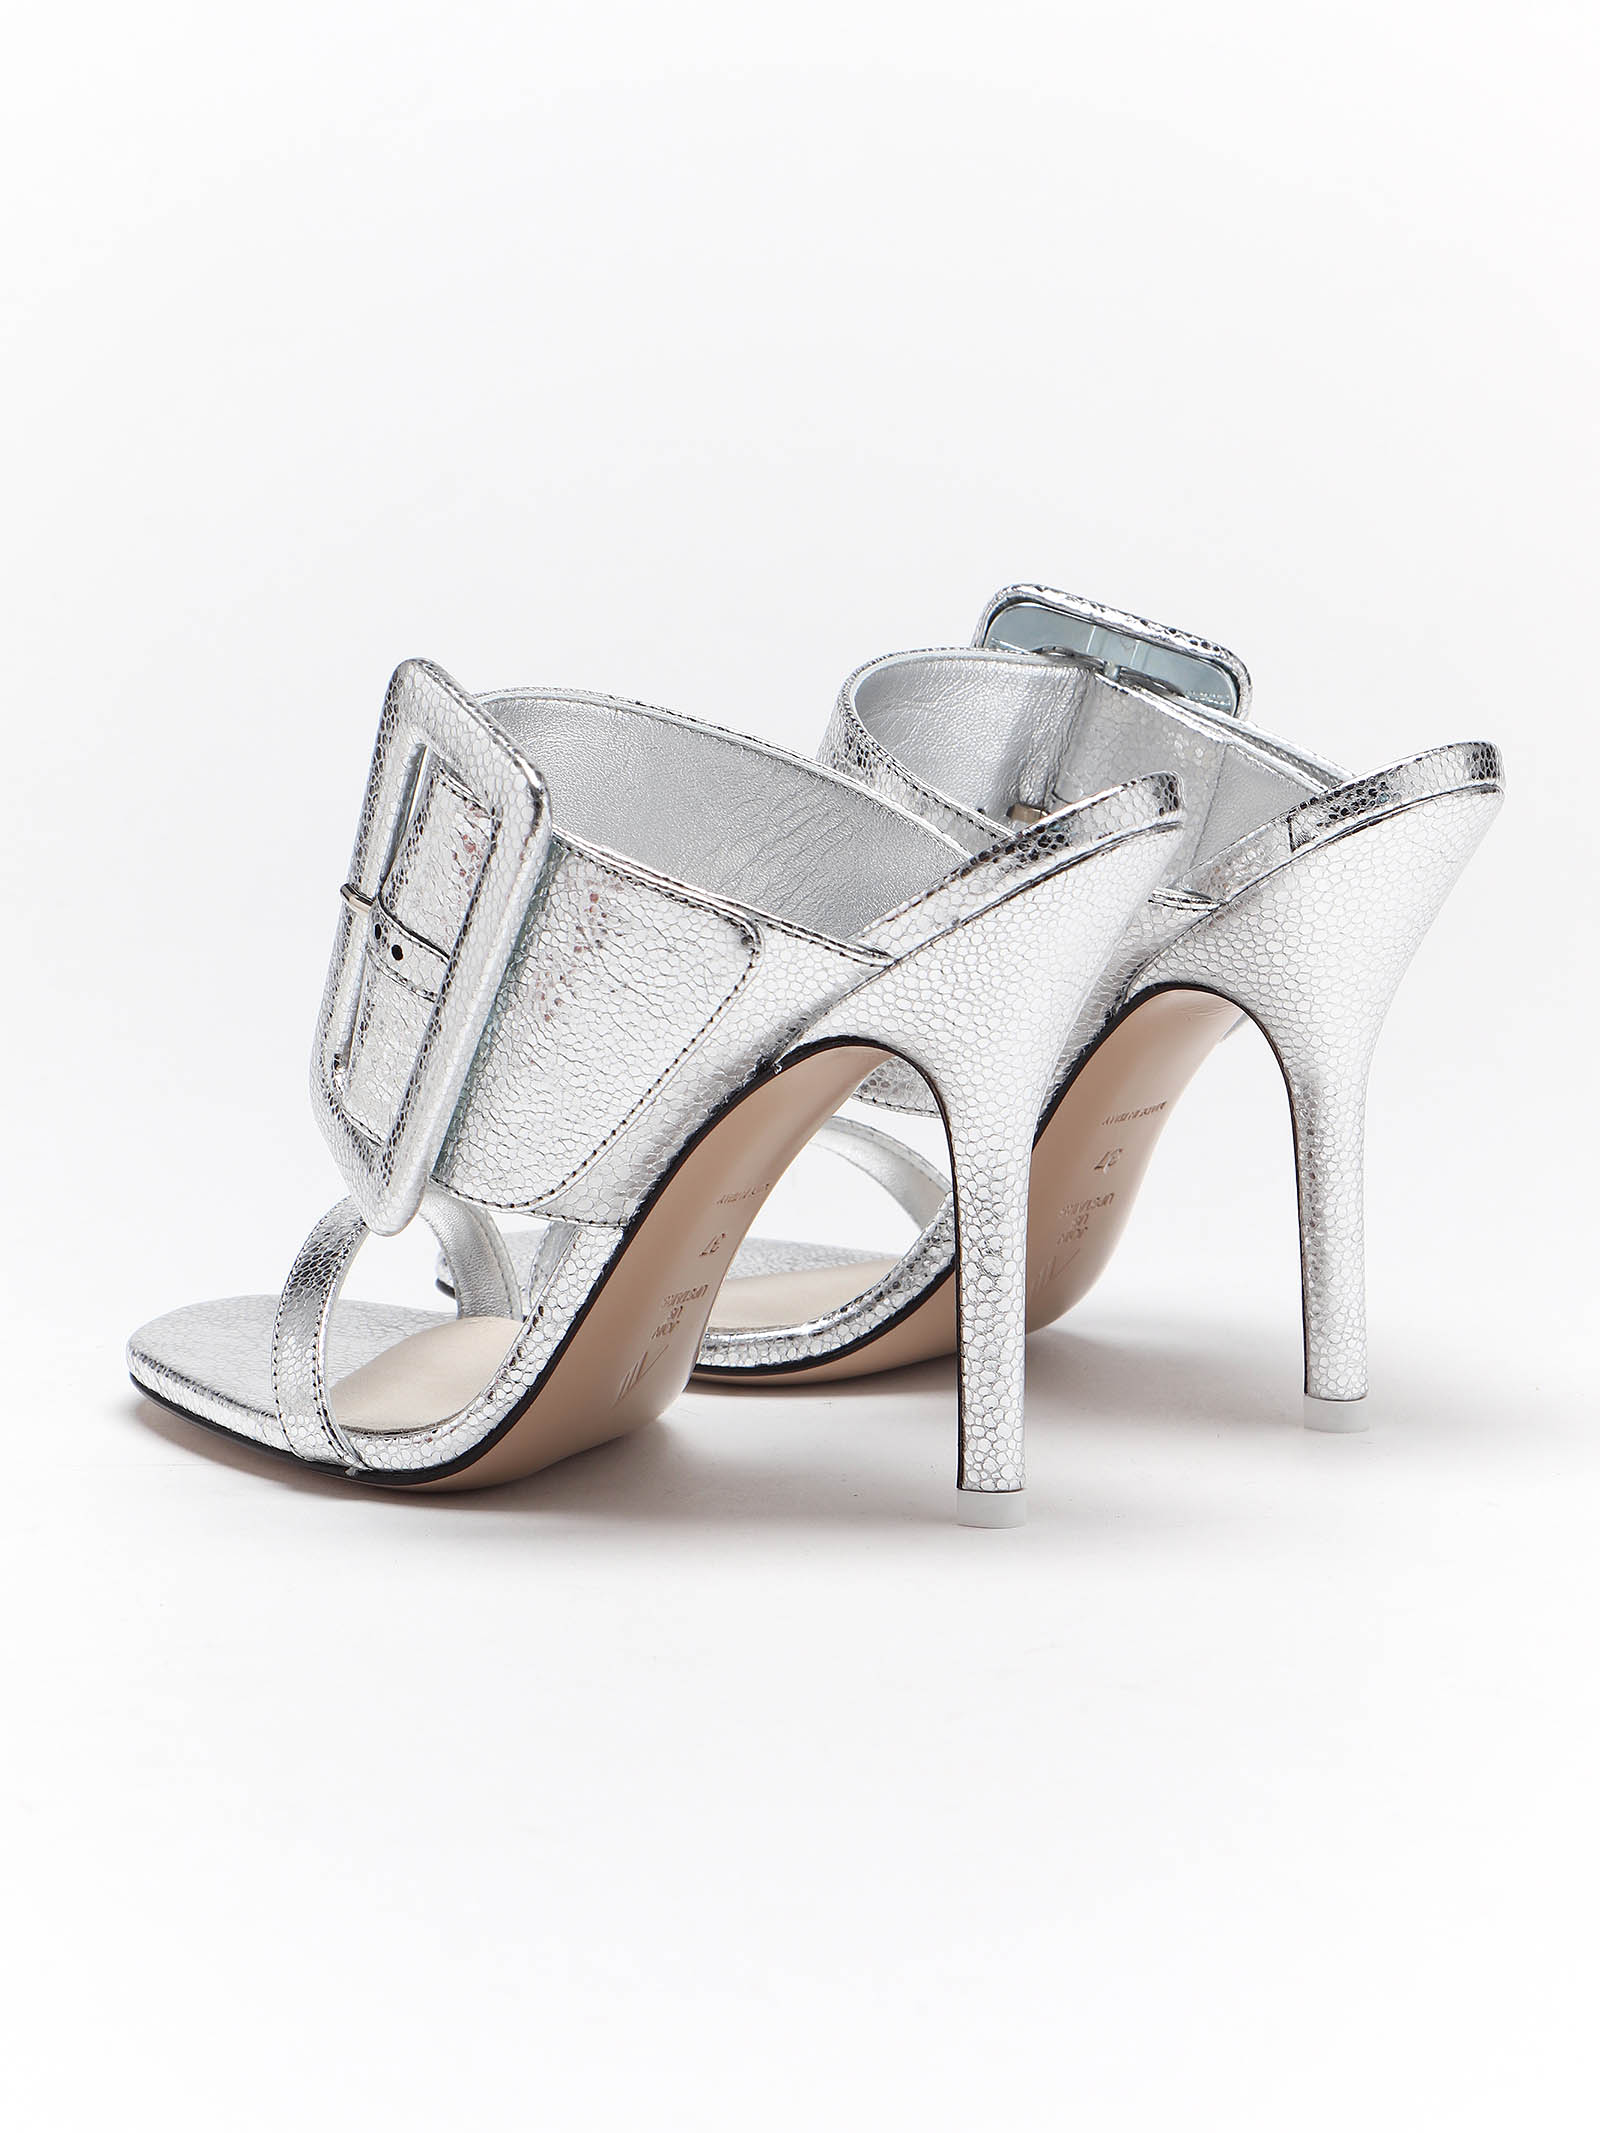 Picture of The Attico | High Heel Buckled Mule